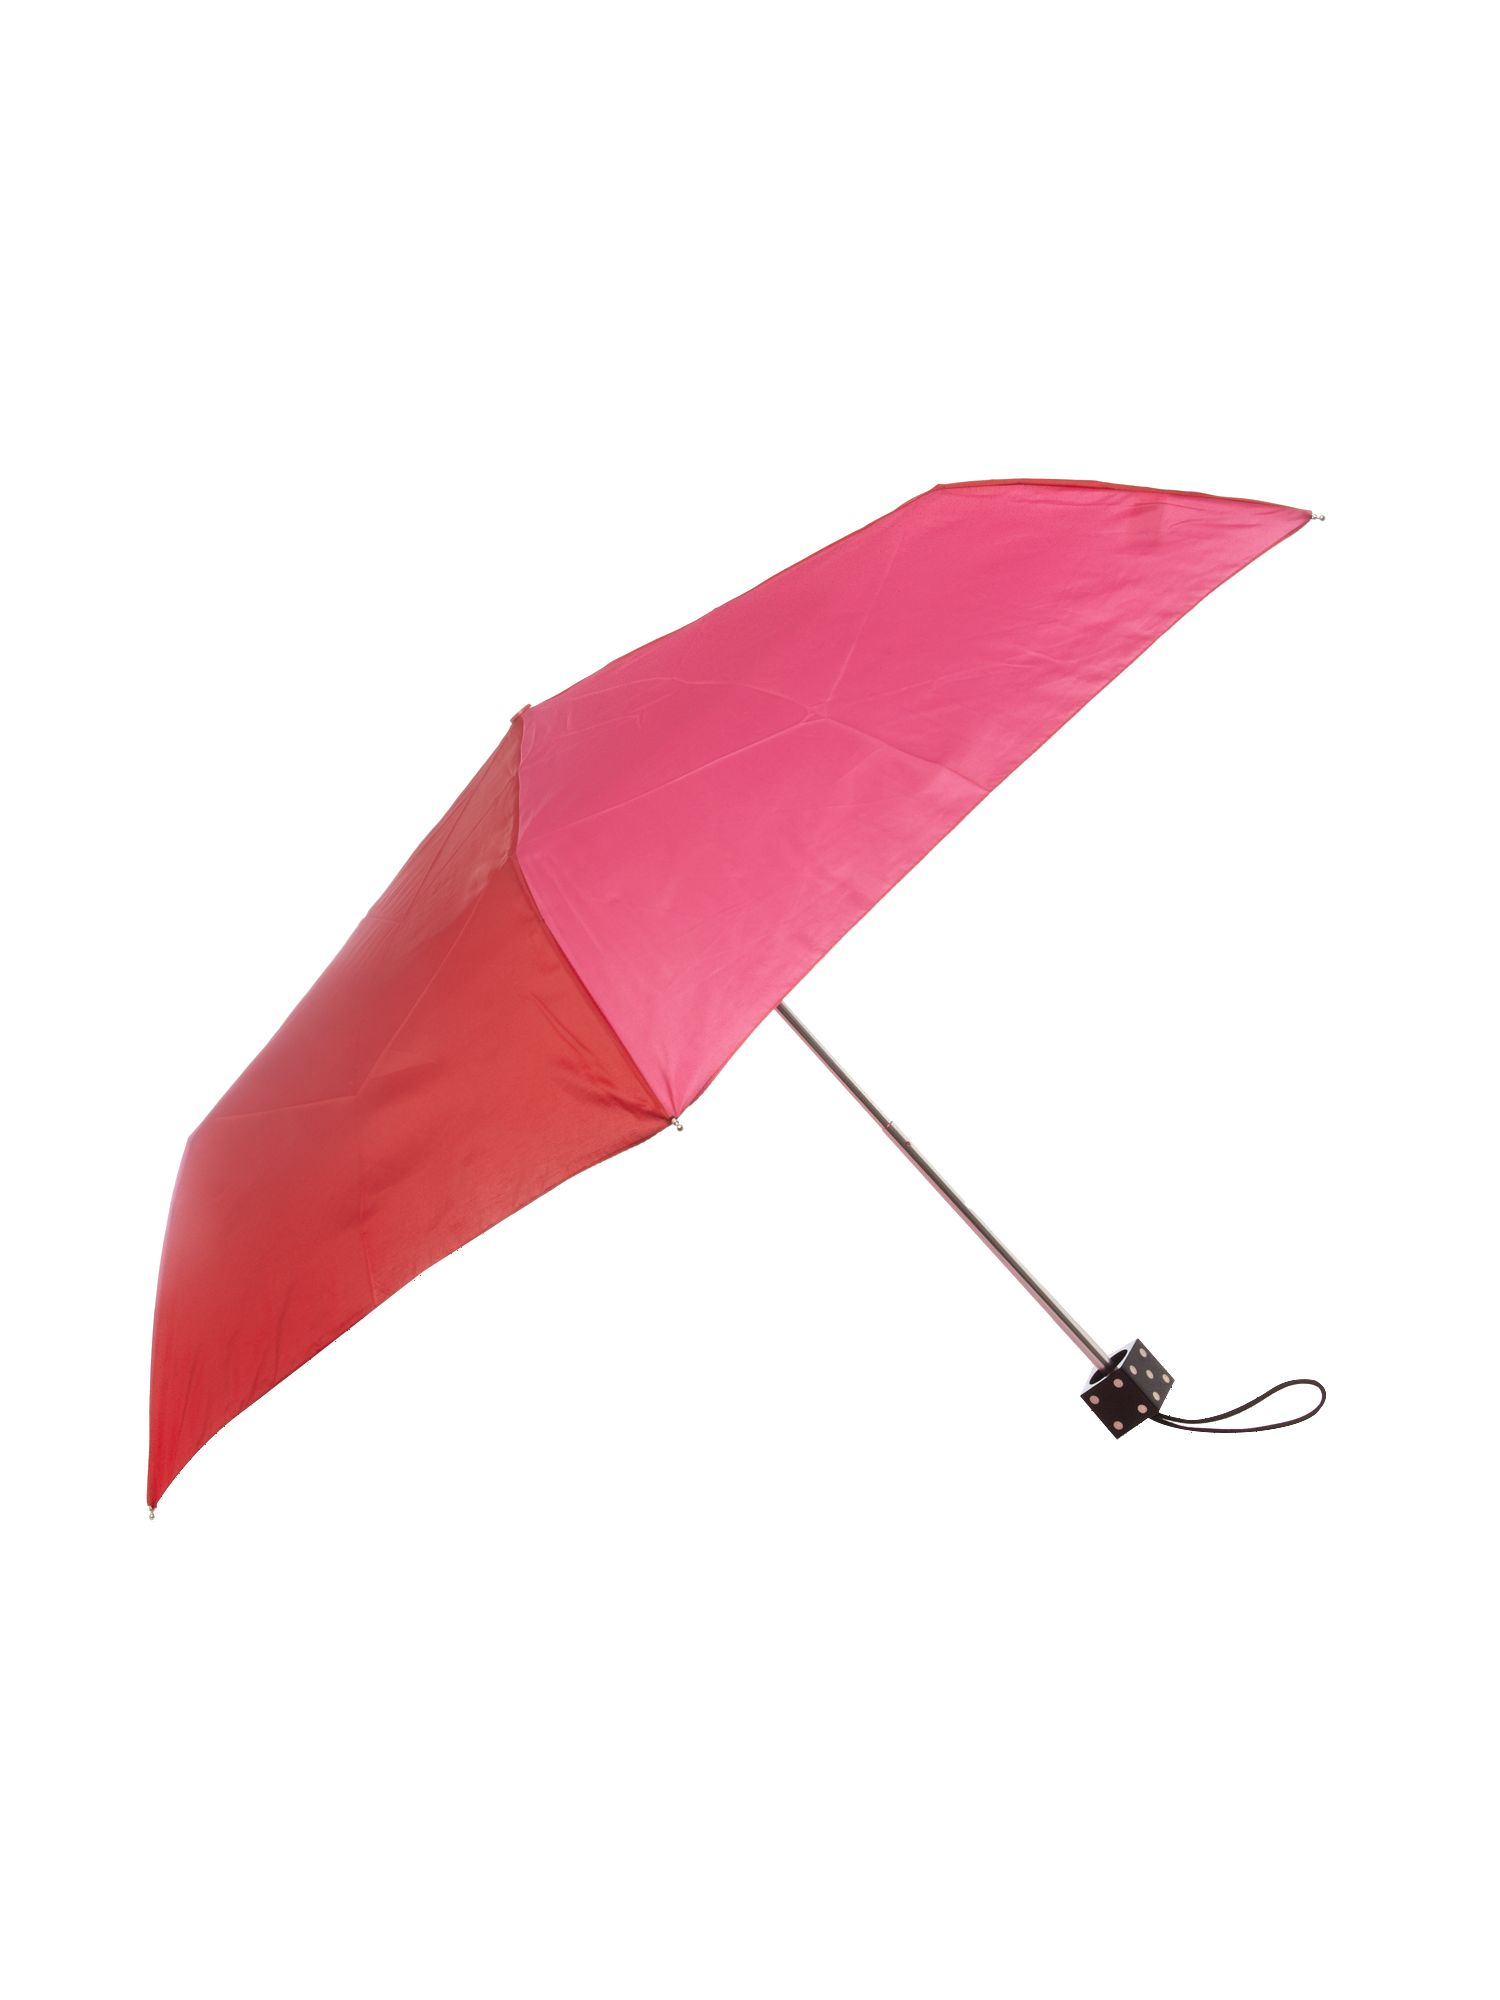 Superslim umbrella with dice handle